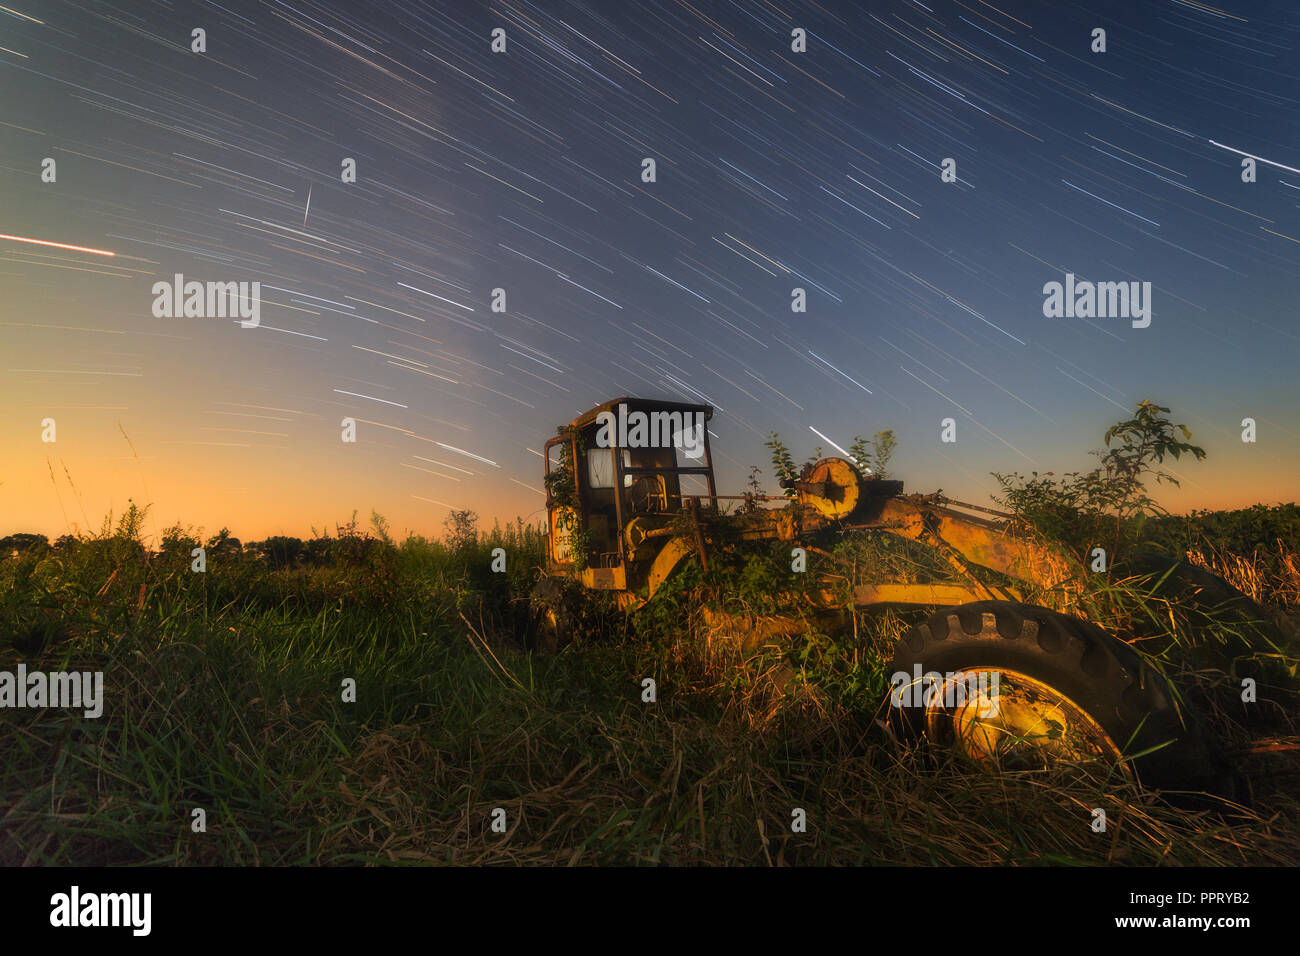 An old Caterpillar Road Grader rusts away in a pasture while star trails and a satellite streak overhead. Stock Photo